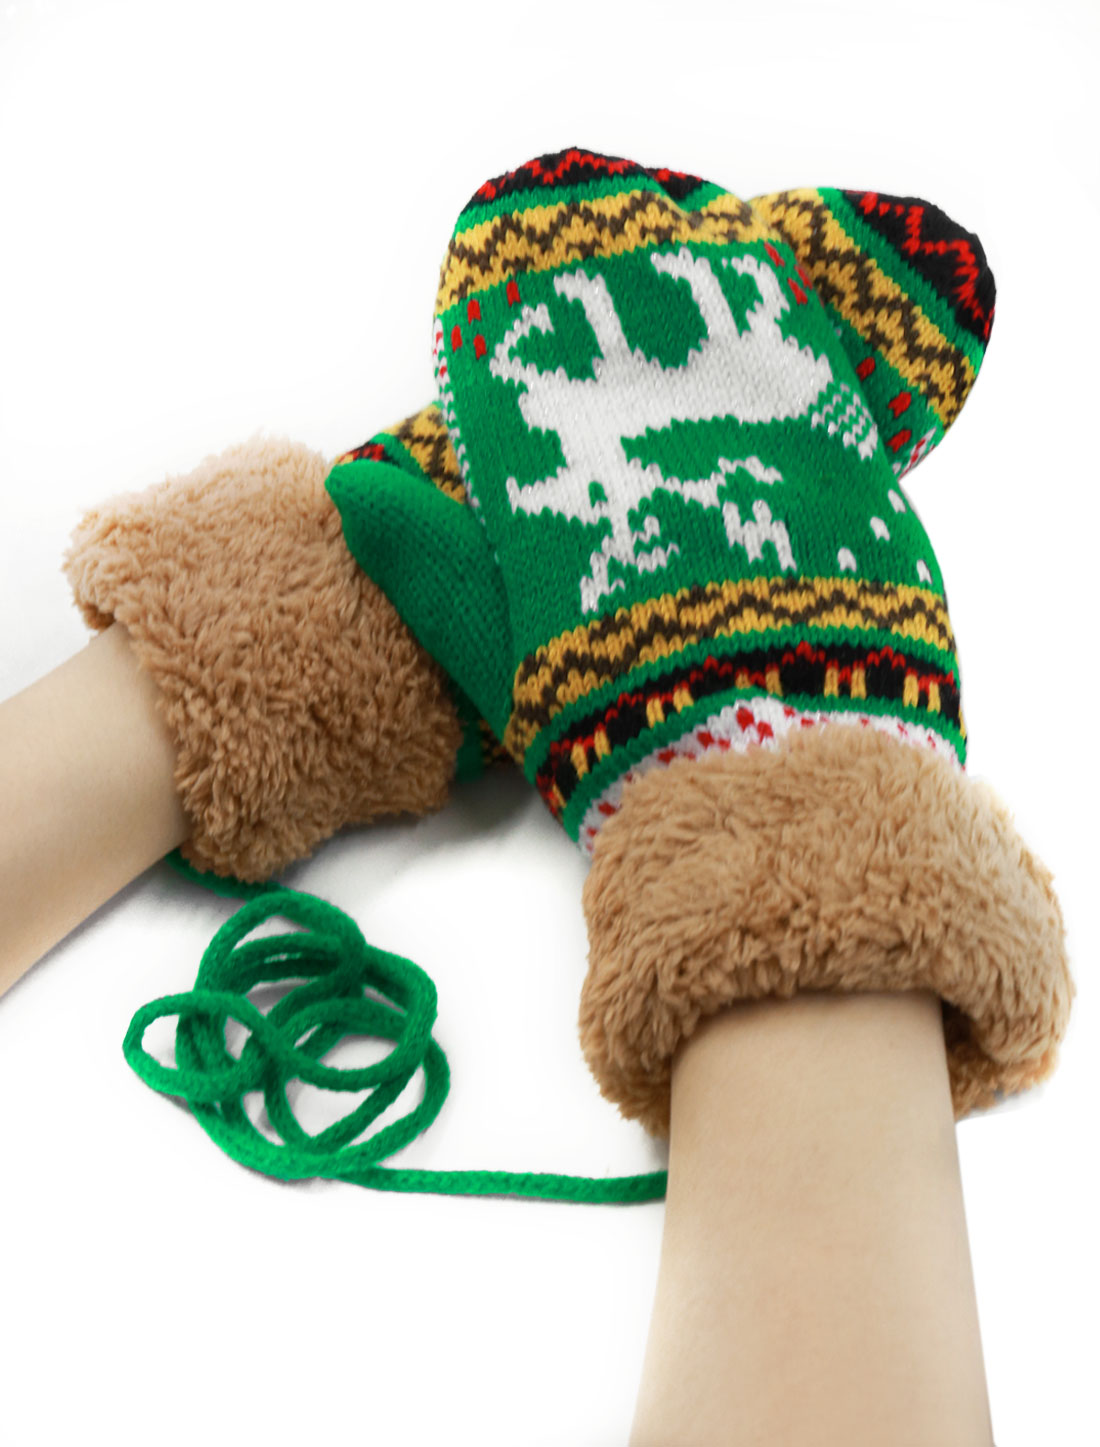 Women Plush Panel Wrist LengthKnit Deer Pattern Mitten Gloves Green Pair